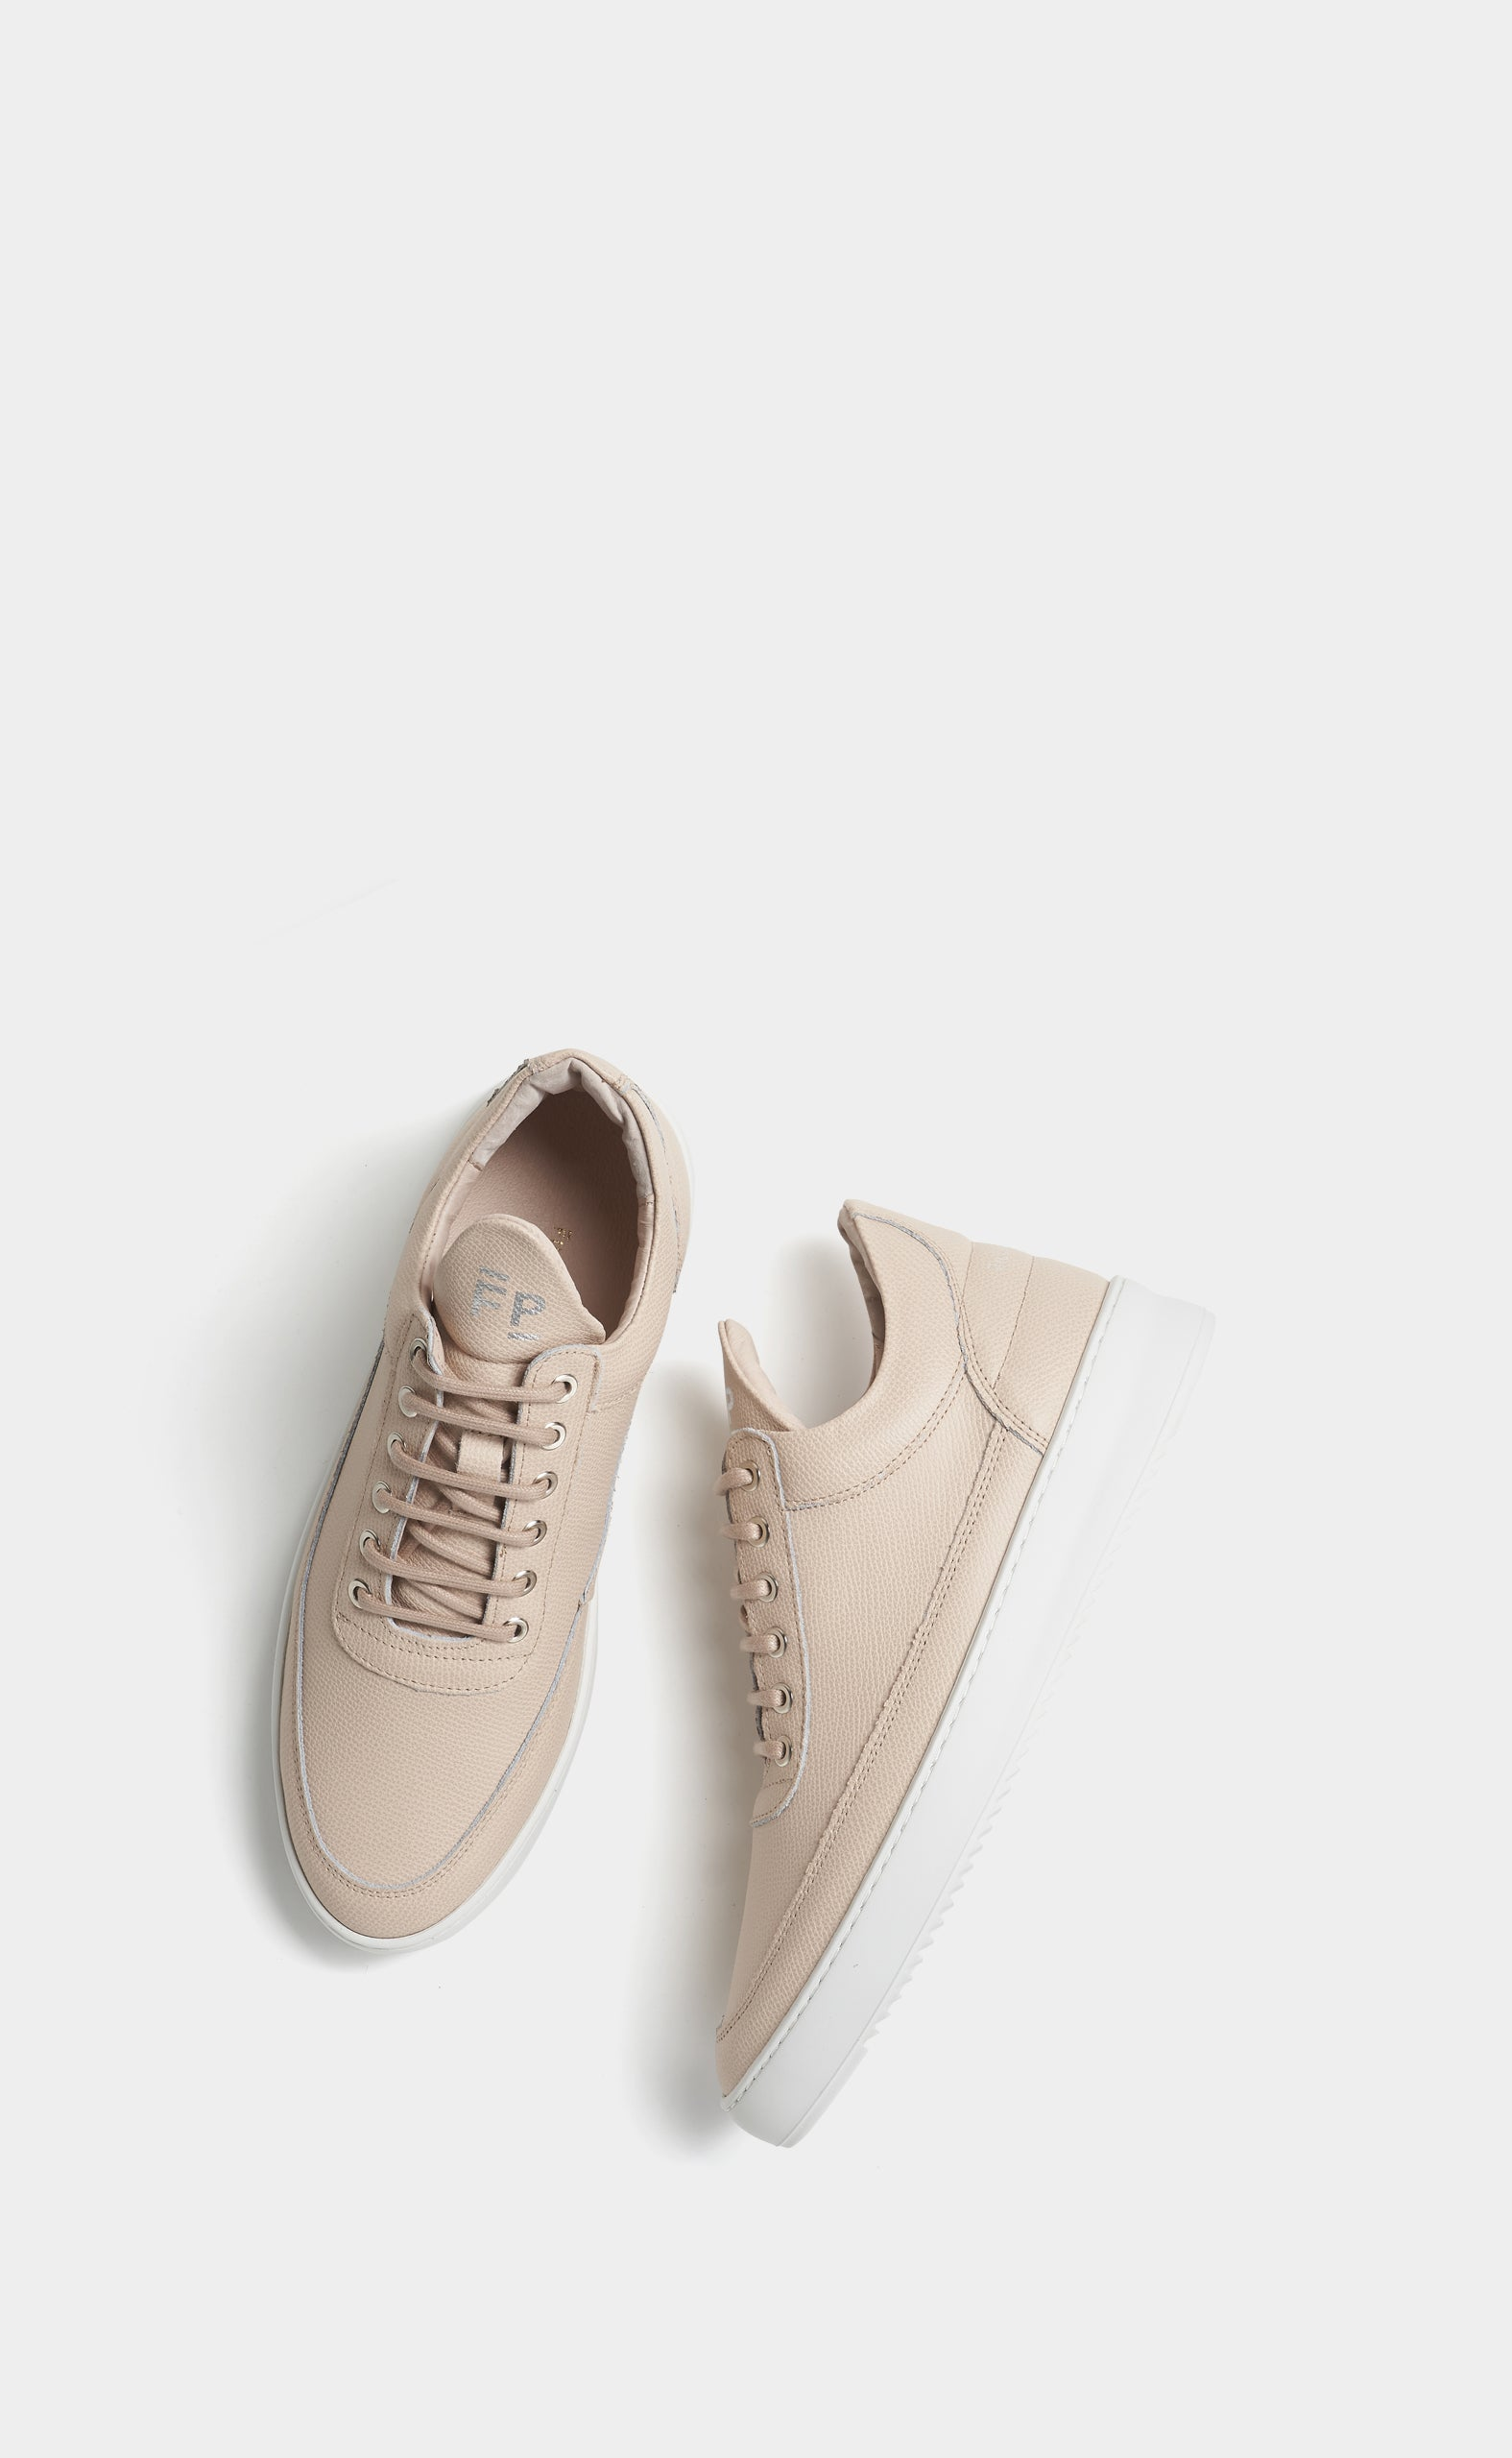 Low Top Ripple Crumbs Nude - women